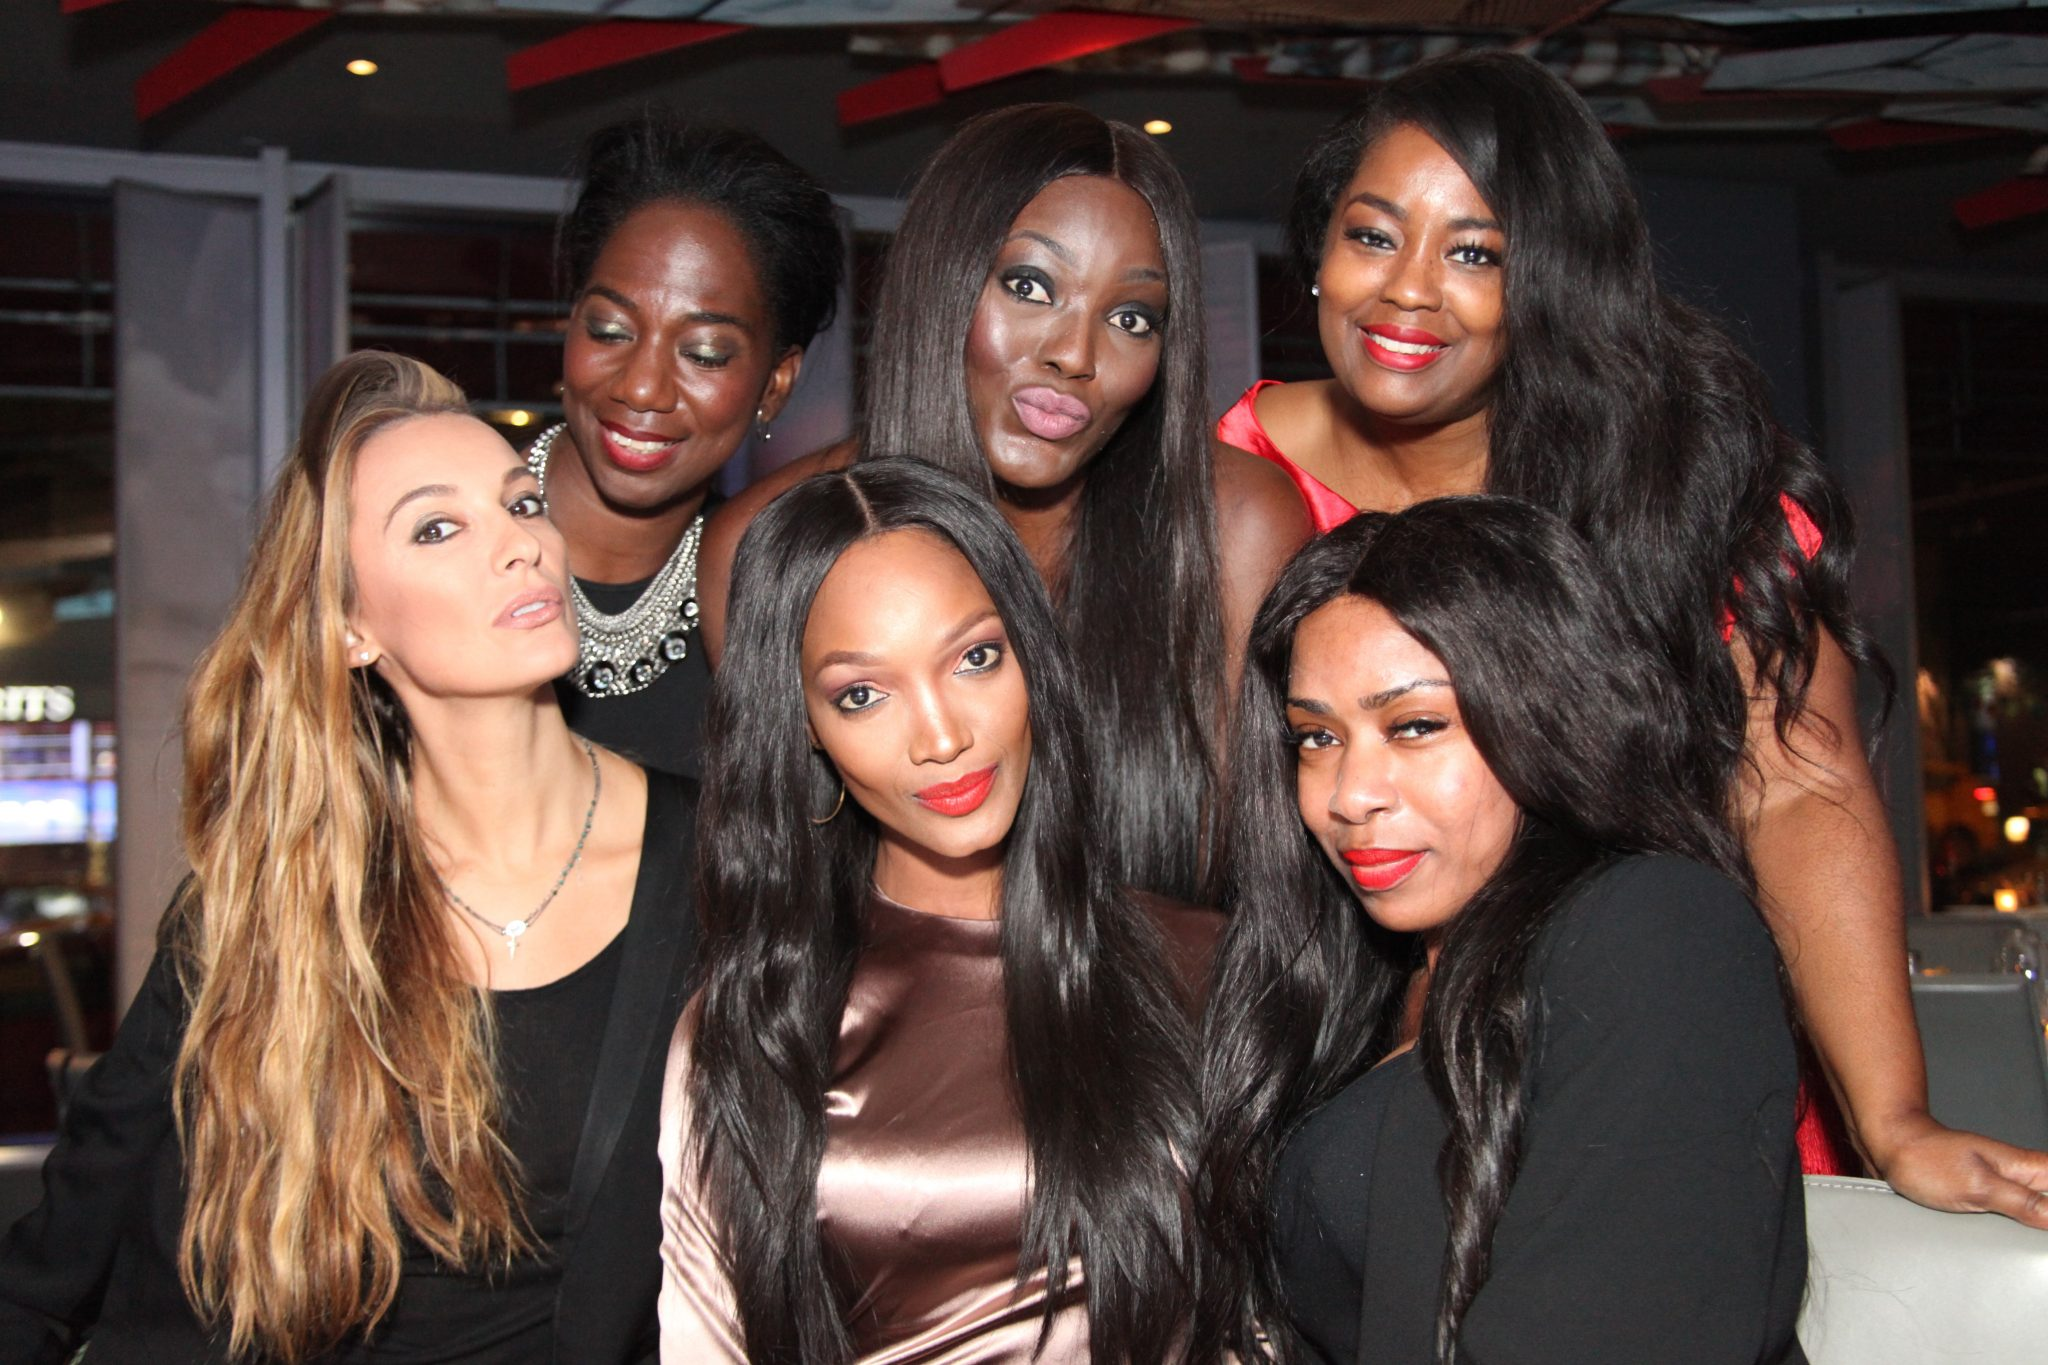 Late Night Dining With International Supermodels…Really?